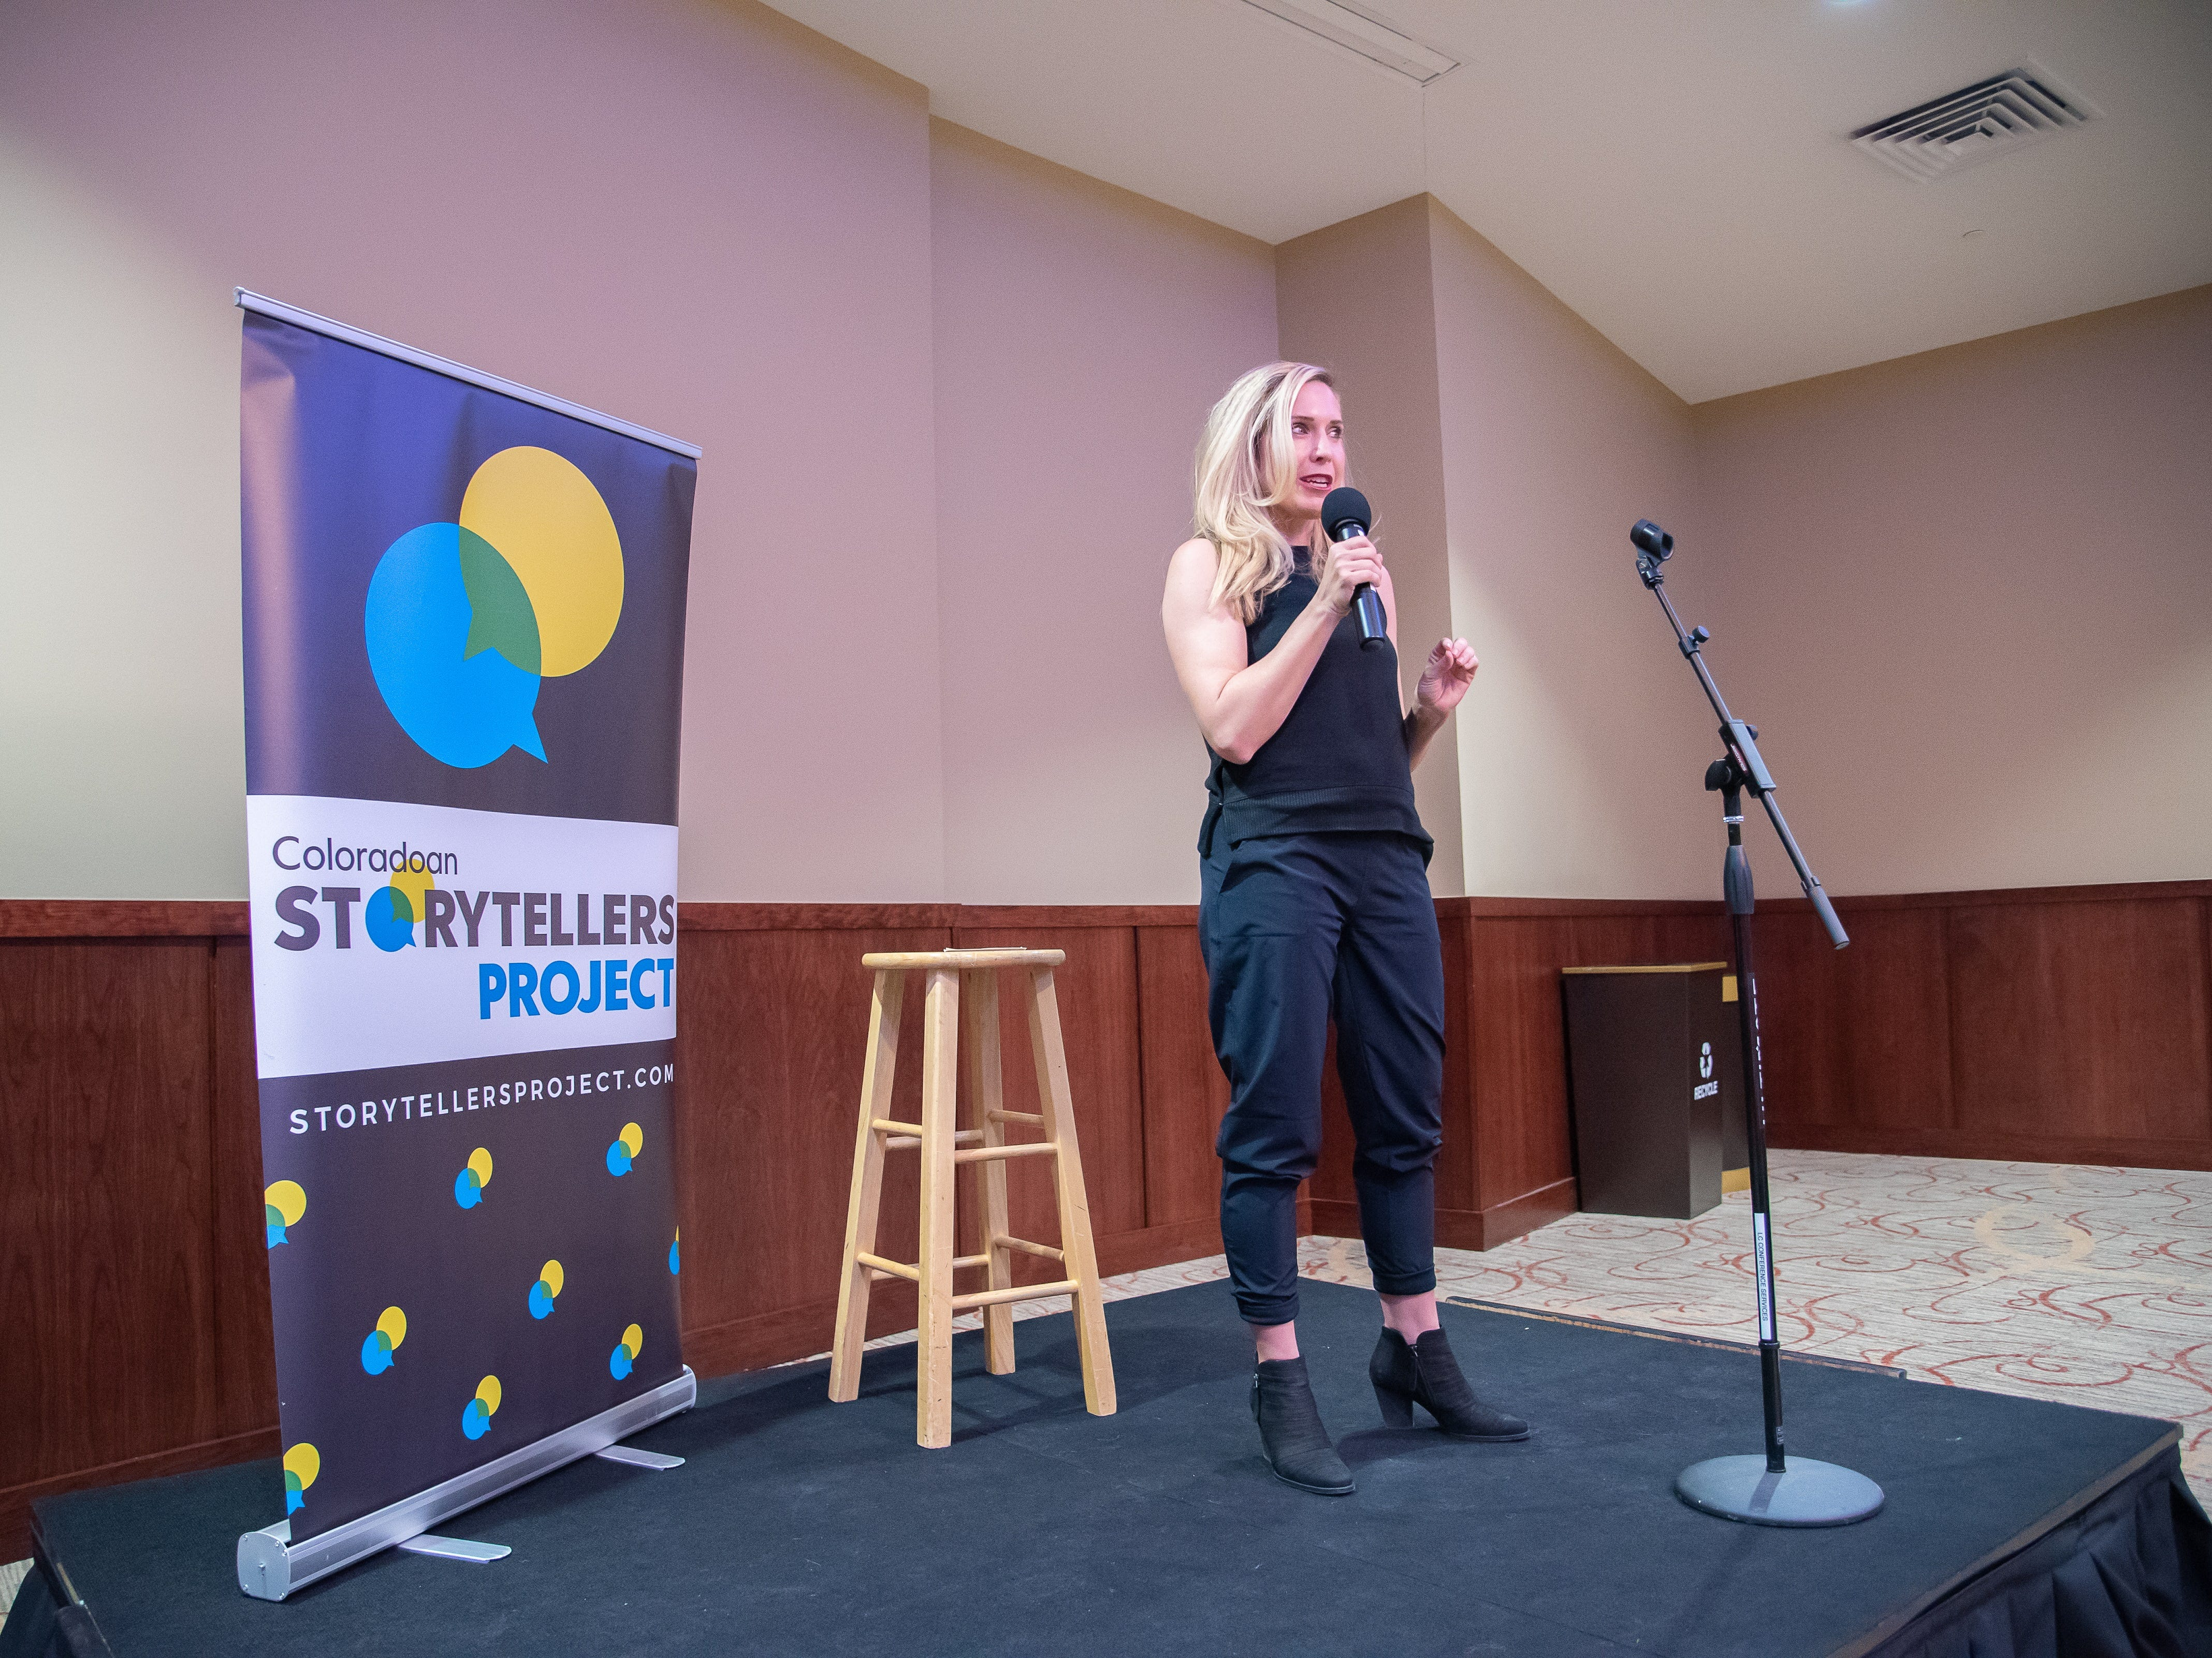 Storyteller Adrian Collins speaks of her complex role as birth mother and adoptive mother during the Coloradoan Storytellers Project at Lincoln Center on Tuesday, December 11, 2018.